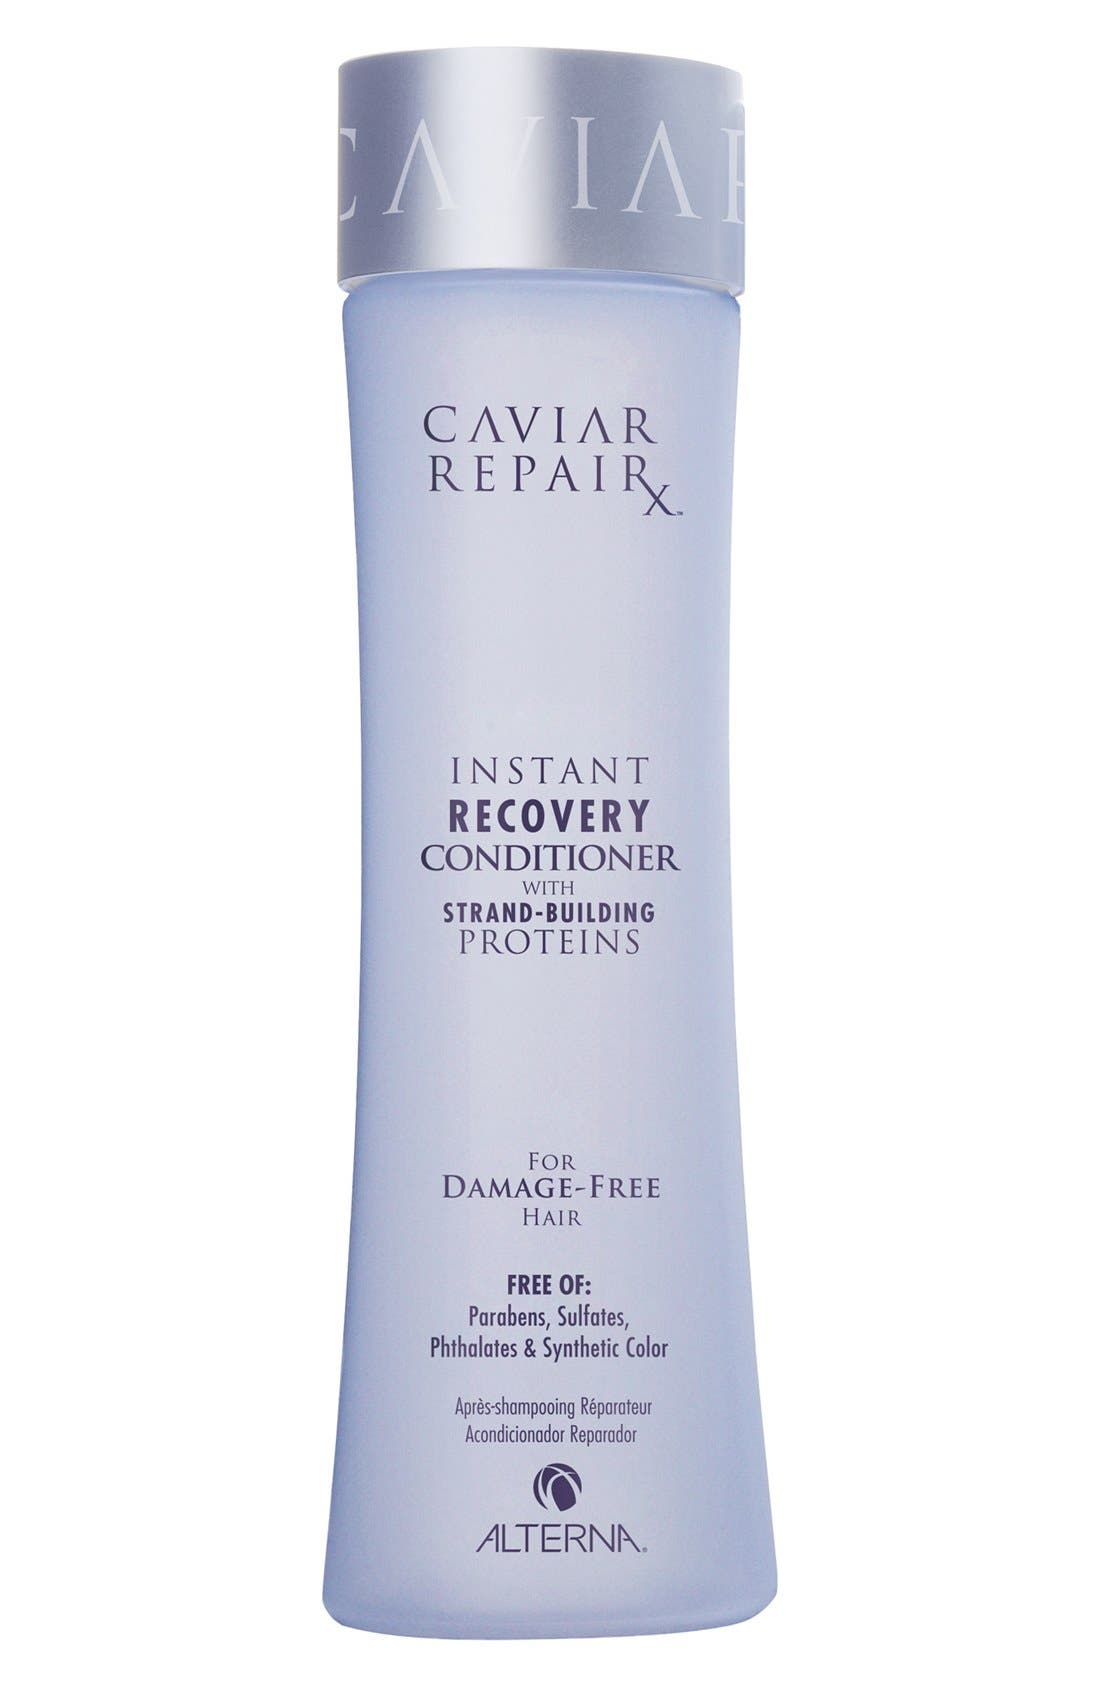 Caviar Repair Rx Instant Recovery Conditioner,                             Main thumbnail 1, color,                             000